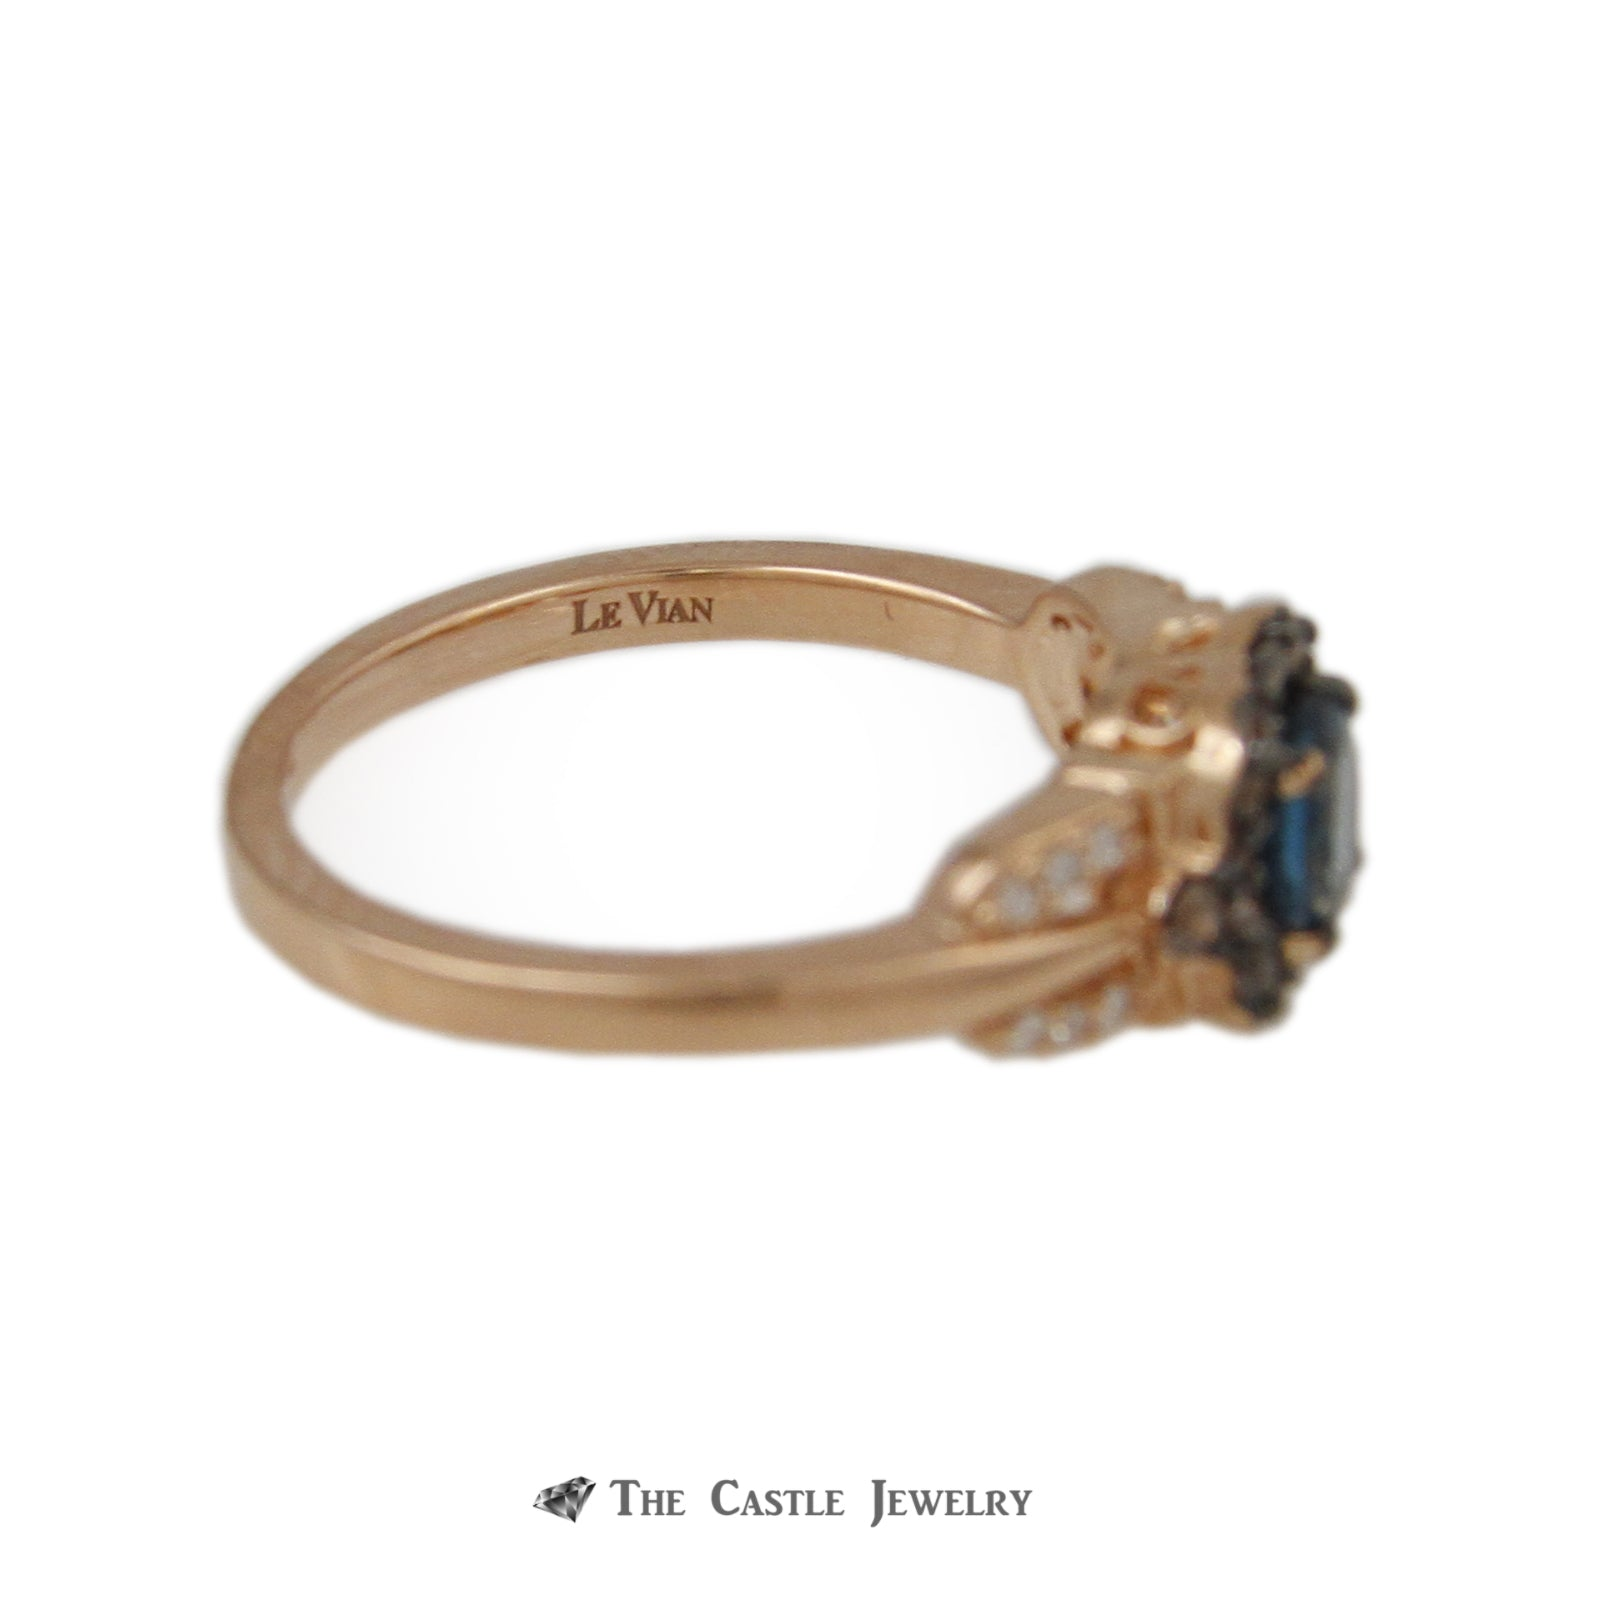 Le Vian Round Topaz Ring Chocolate Diamond Bezel & Sides in 14k Strawberry Gold ™-2